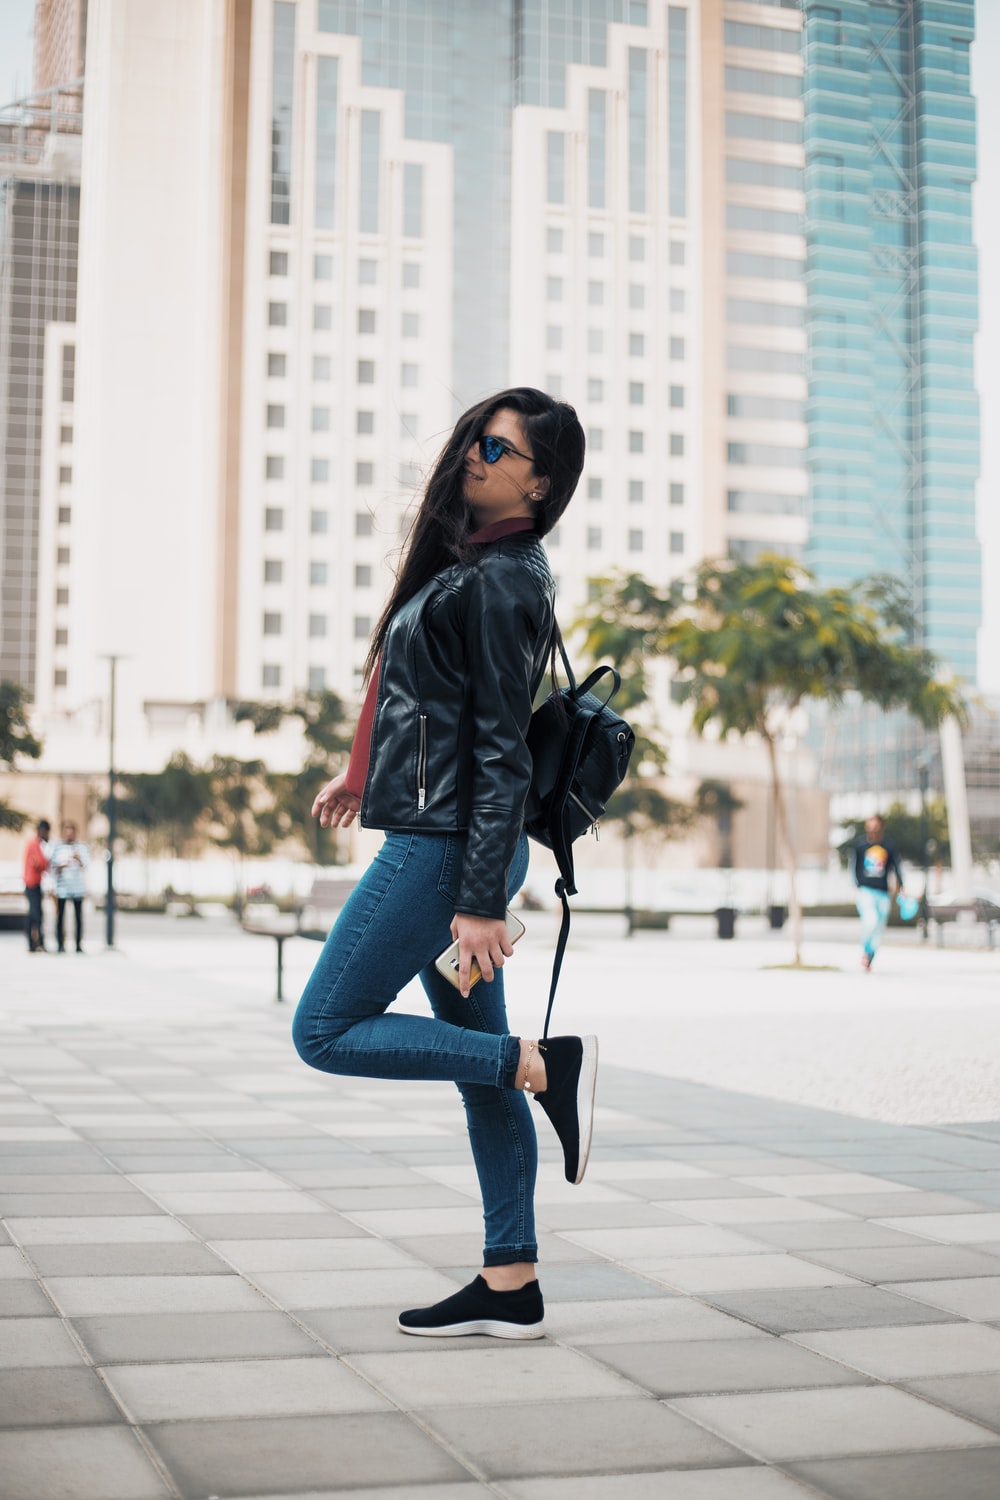 woman in black jacket and blue denim jeans standing on sidewalk during daytime